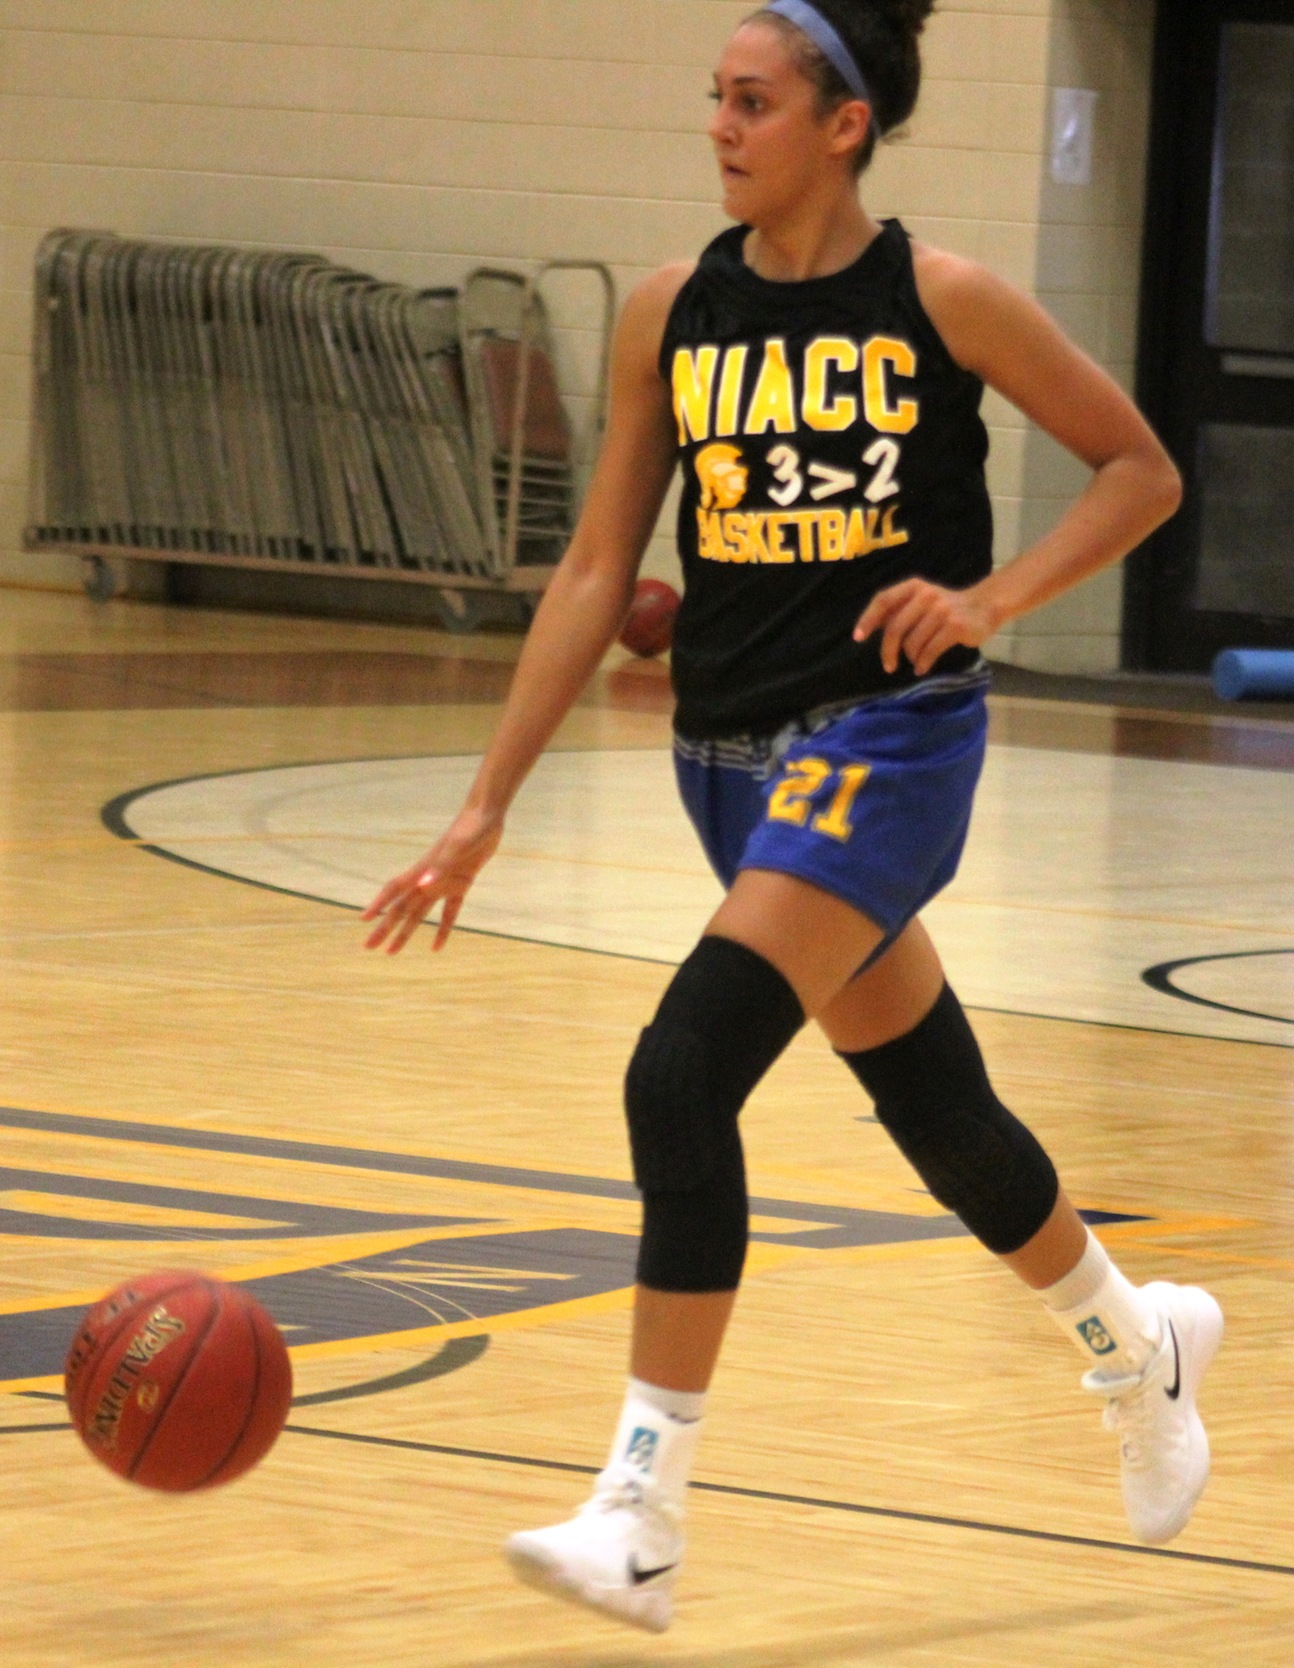 NIACC's Laker Ward dribble the ball up court in a recent practice.